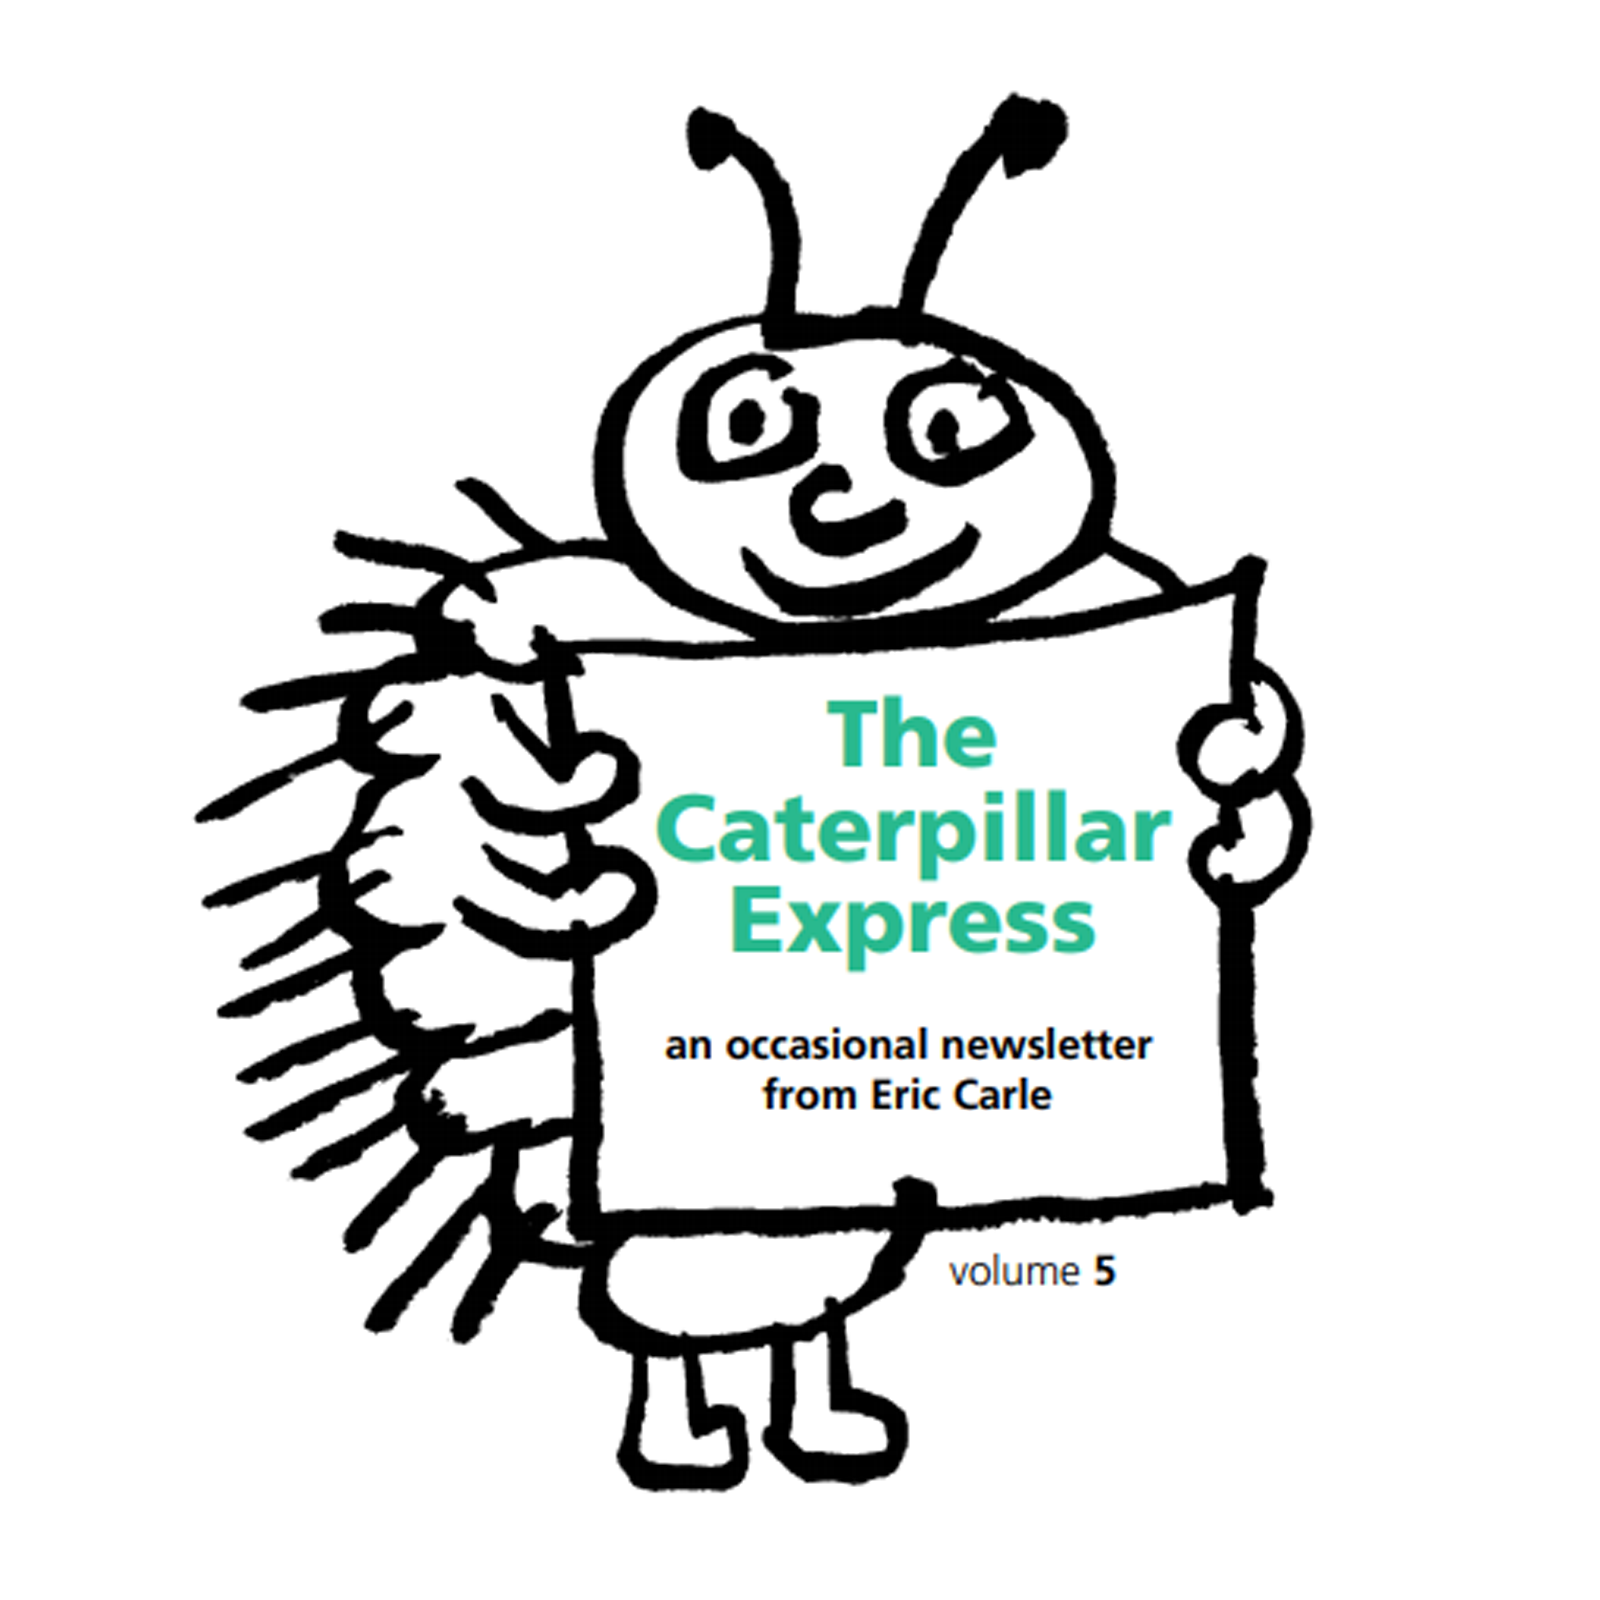 Caterpillar Express Volume 5